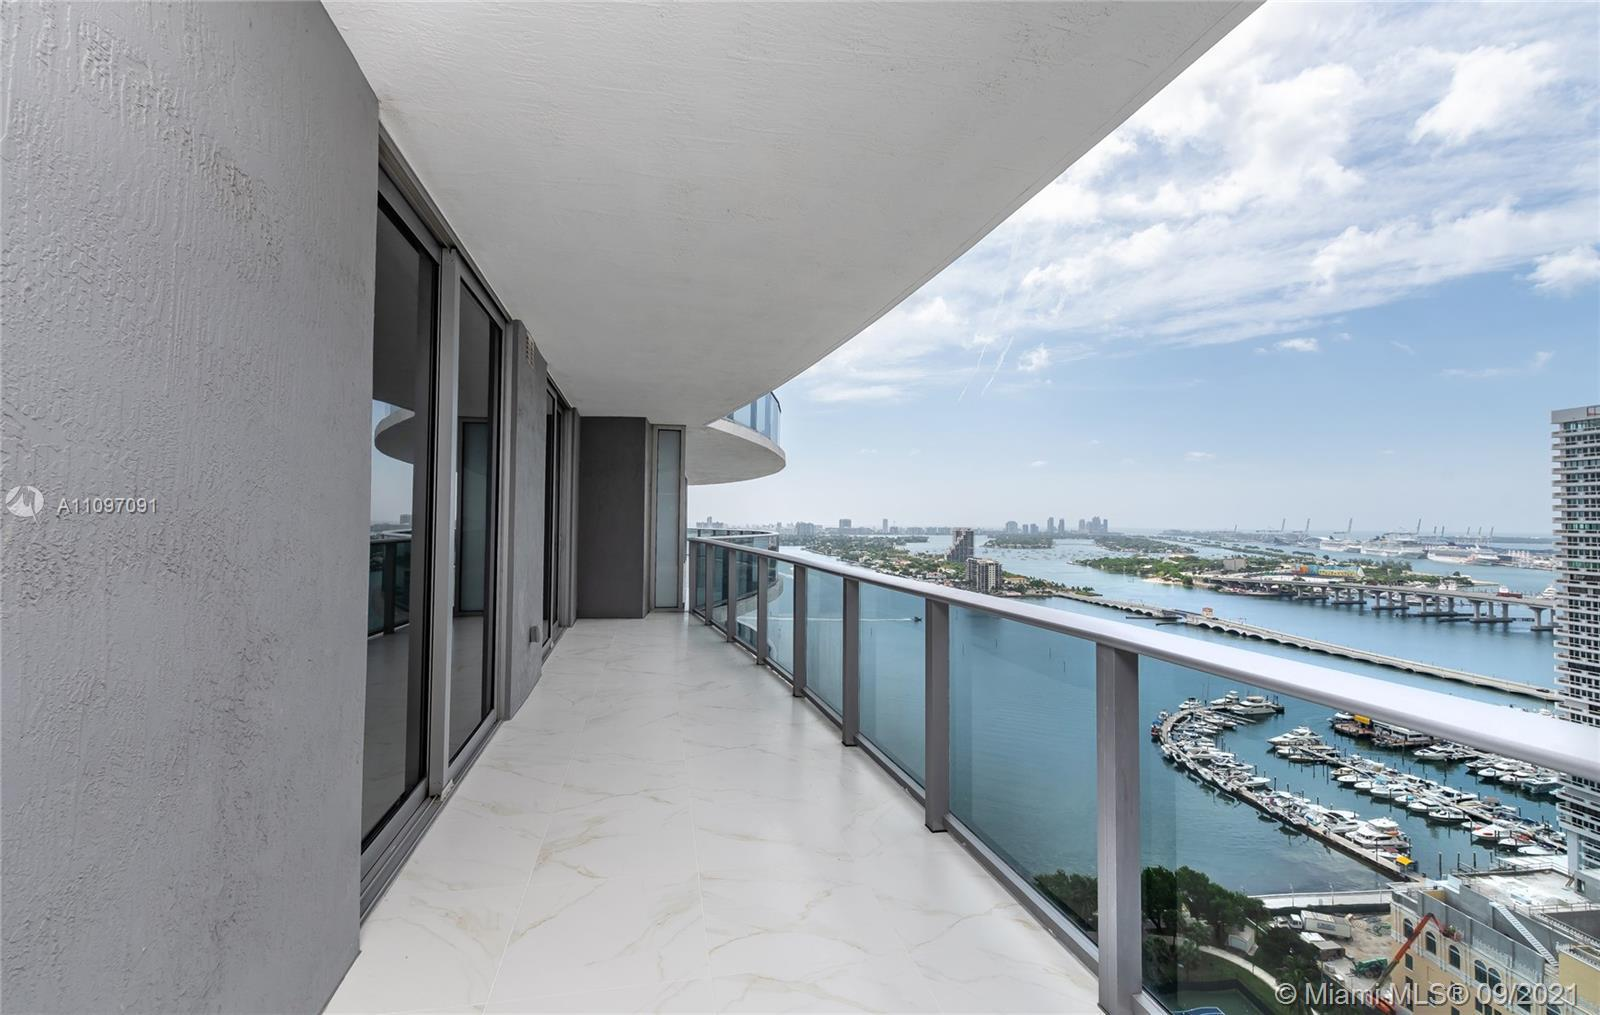 BRIGHT AND SUPER SPACIOUS  3 BED, 3 1/2 BATH UNIT WITH BREATHTAKING VIEWS TO BISCAYNE BAY AT LUXURIO